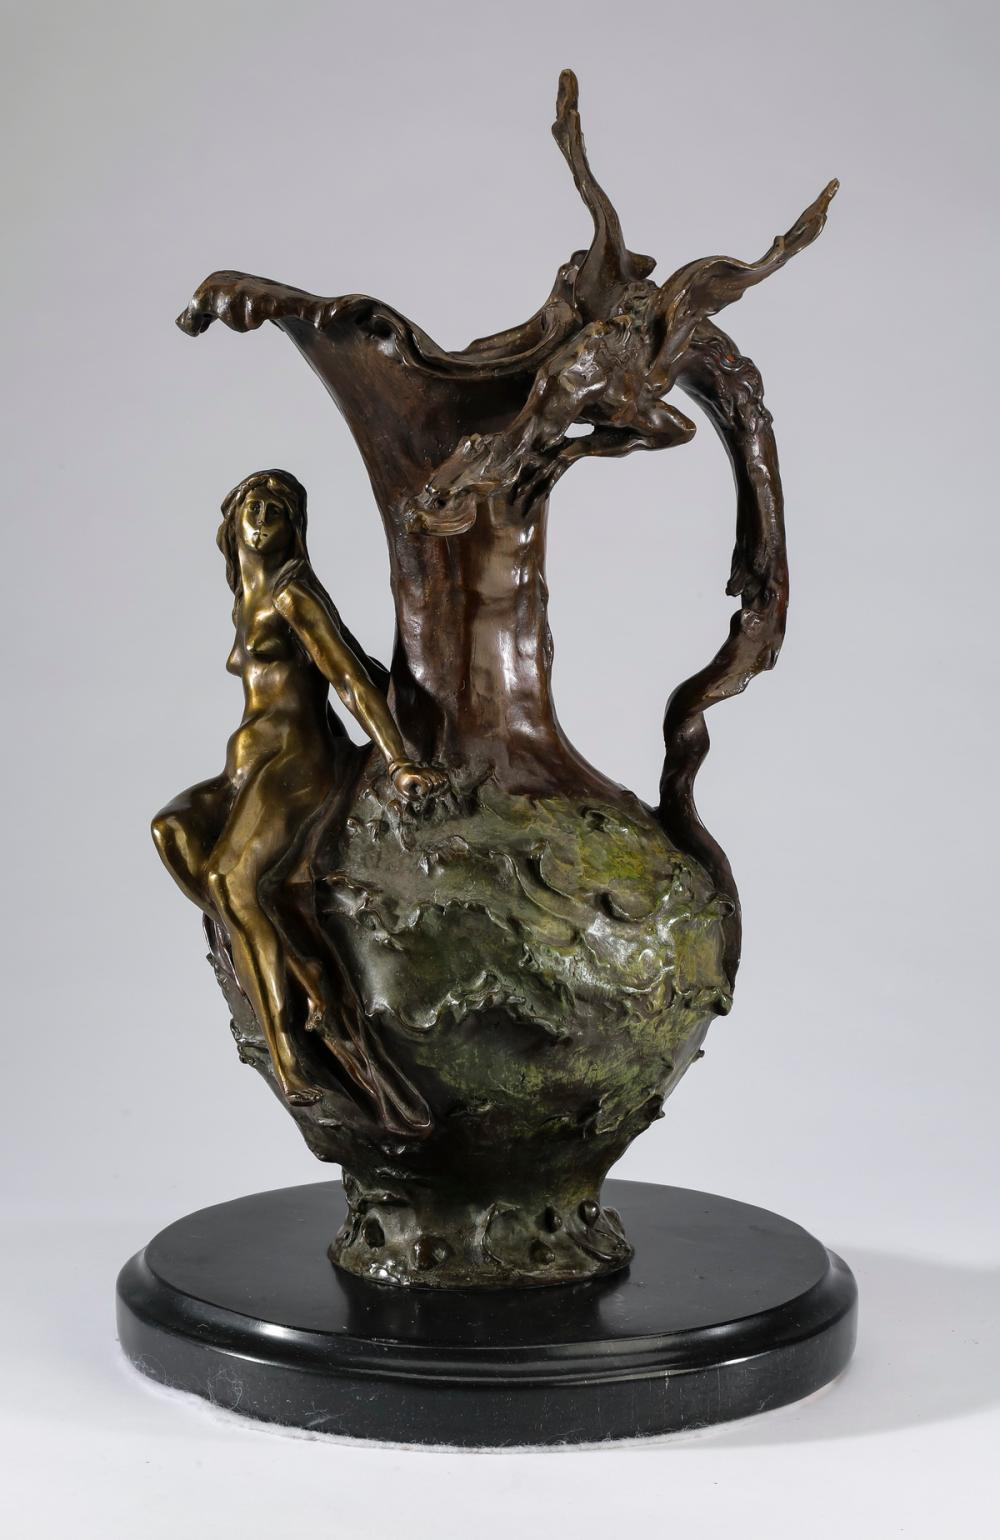 Bronze ewer with seated nymph and dragon handle